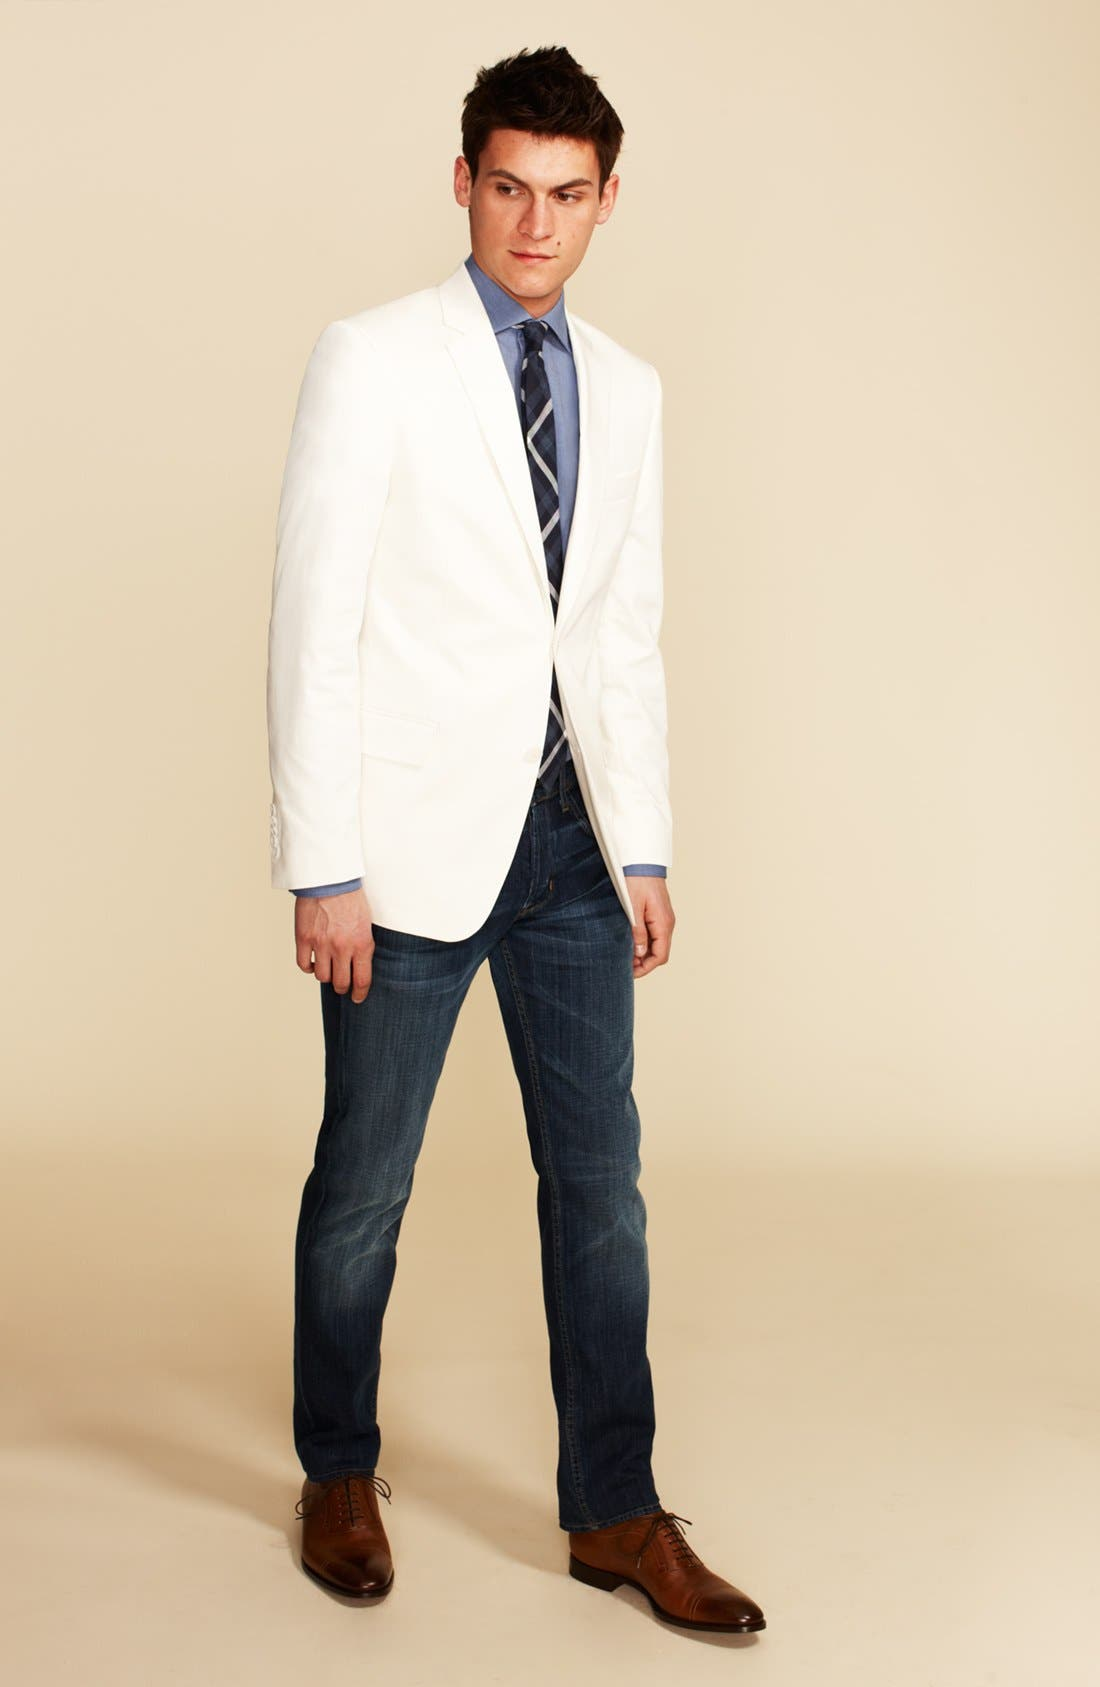 Alternate Image 1 Selected - John Varvatos Star USA Blazer, 1901 Dress Shirt & Hudson Jeans Straight Leg Jeans